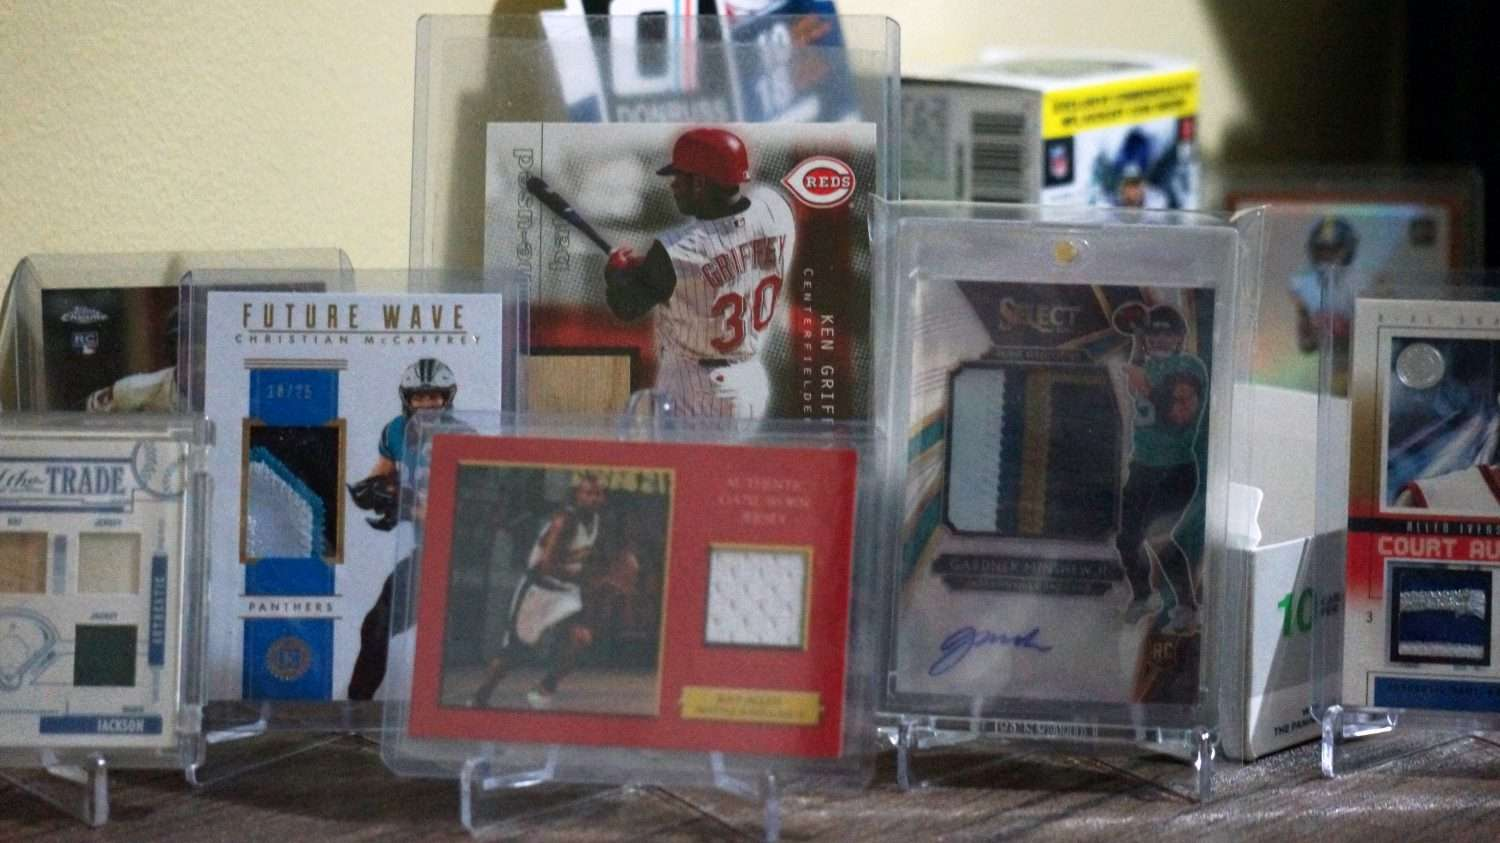 Sports card collectors adjust to COVID-19 challenges as some begin to feel priced out of the hobby